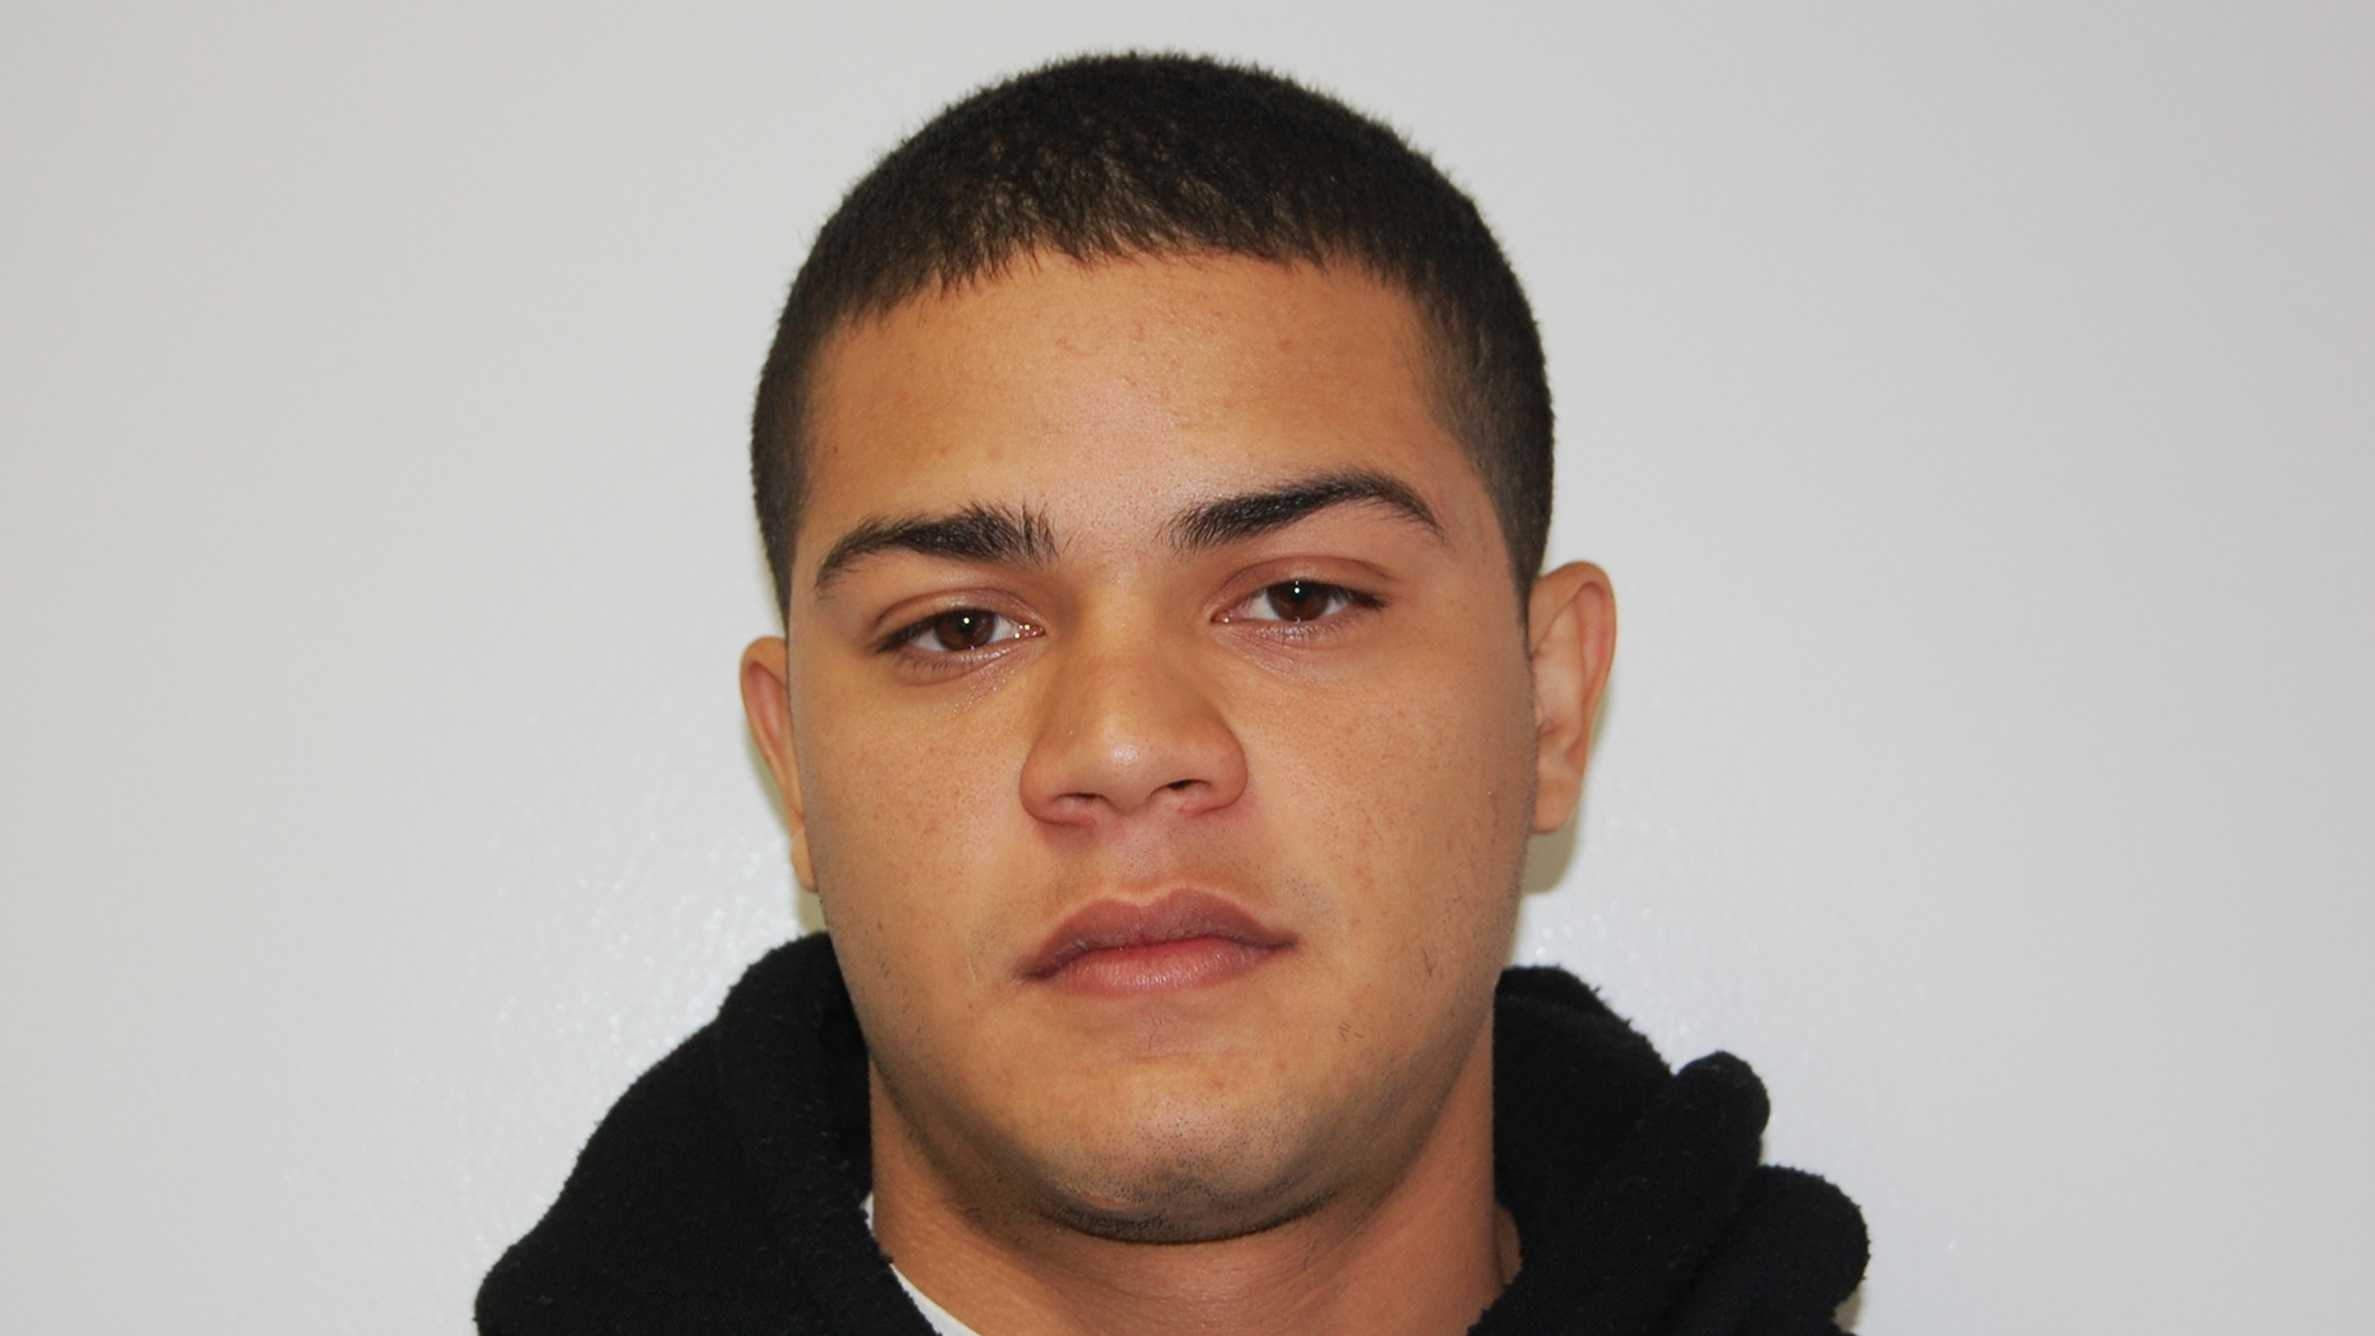 Larry Quiroz is wanted for attempted murder.